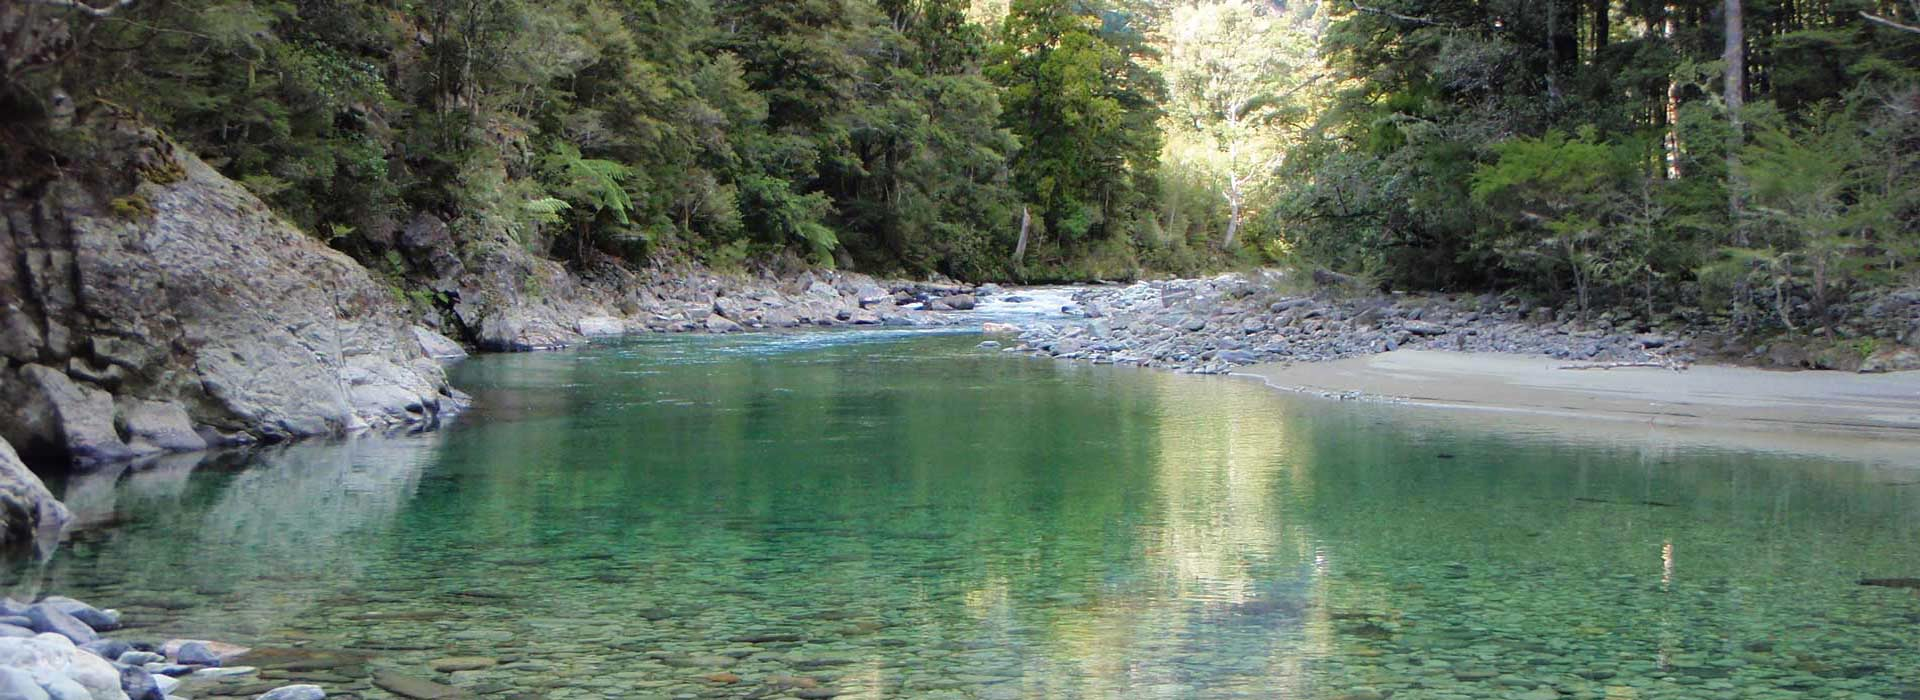 Fly fishing in Nelson and Tasman at the top of New Zealand's South Island